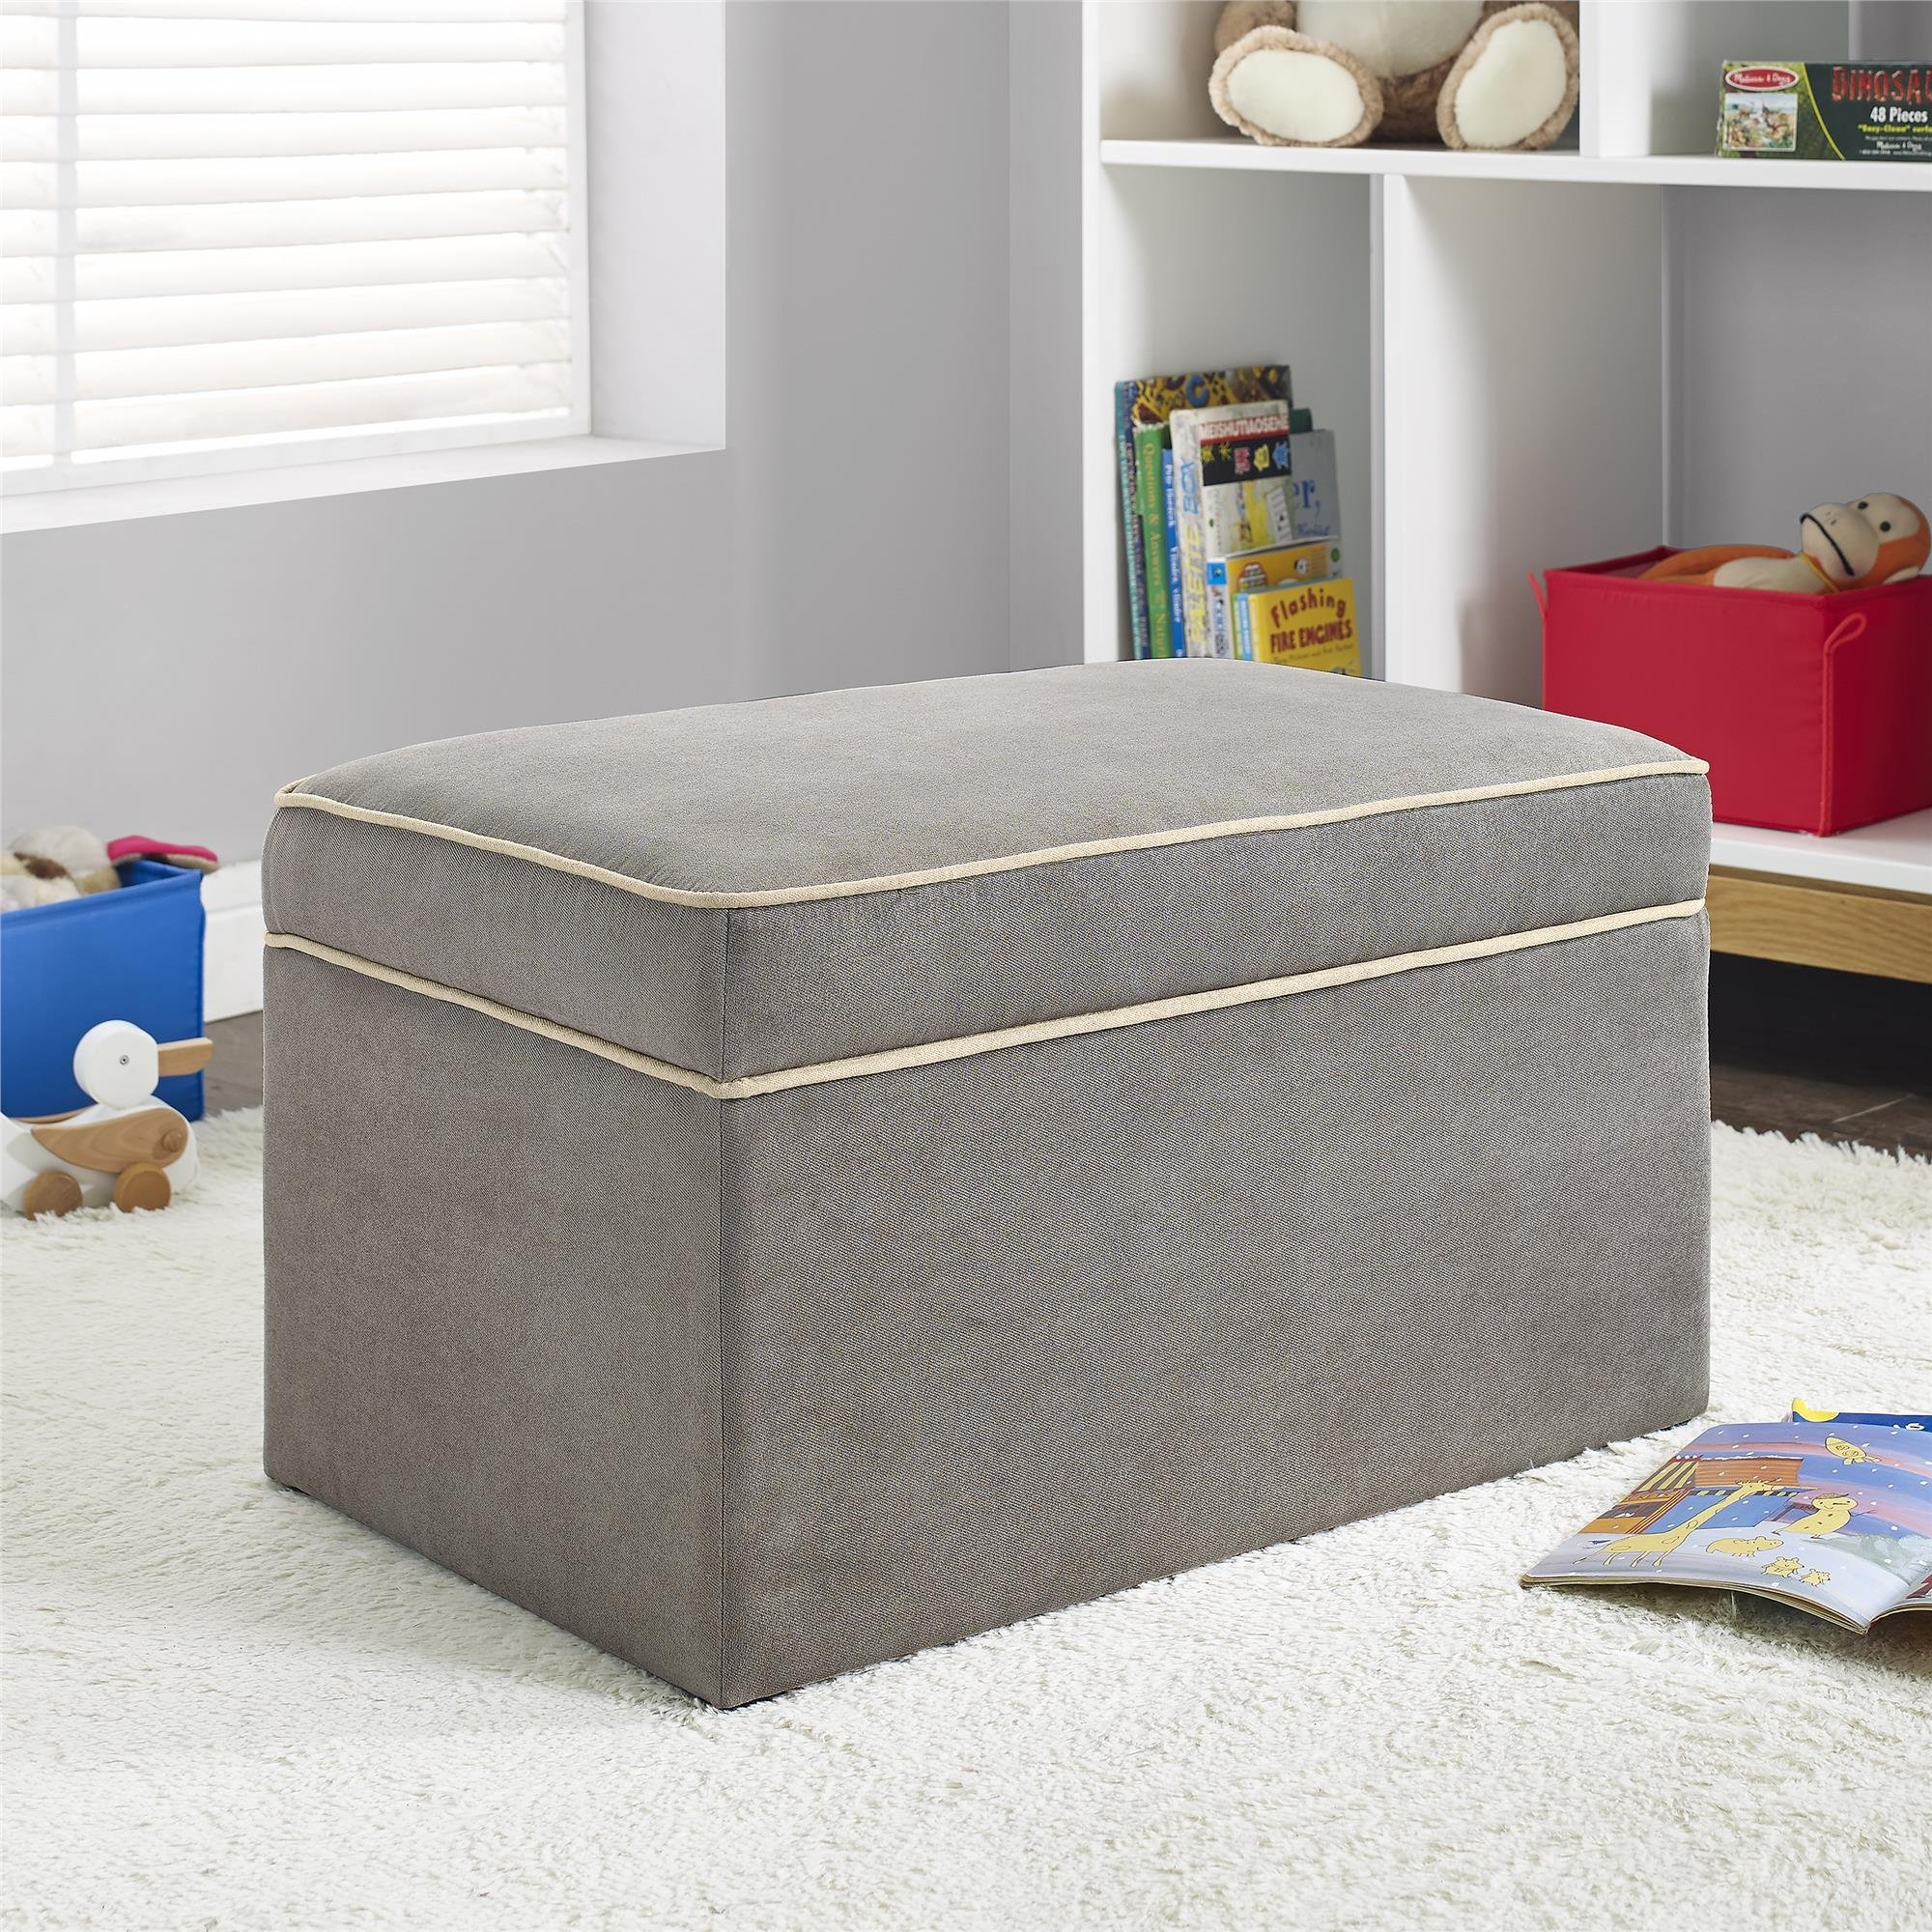 Baby Relax Hadley Nursery Storage Ottoman for Baby Gliders, Dark Taupe